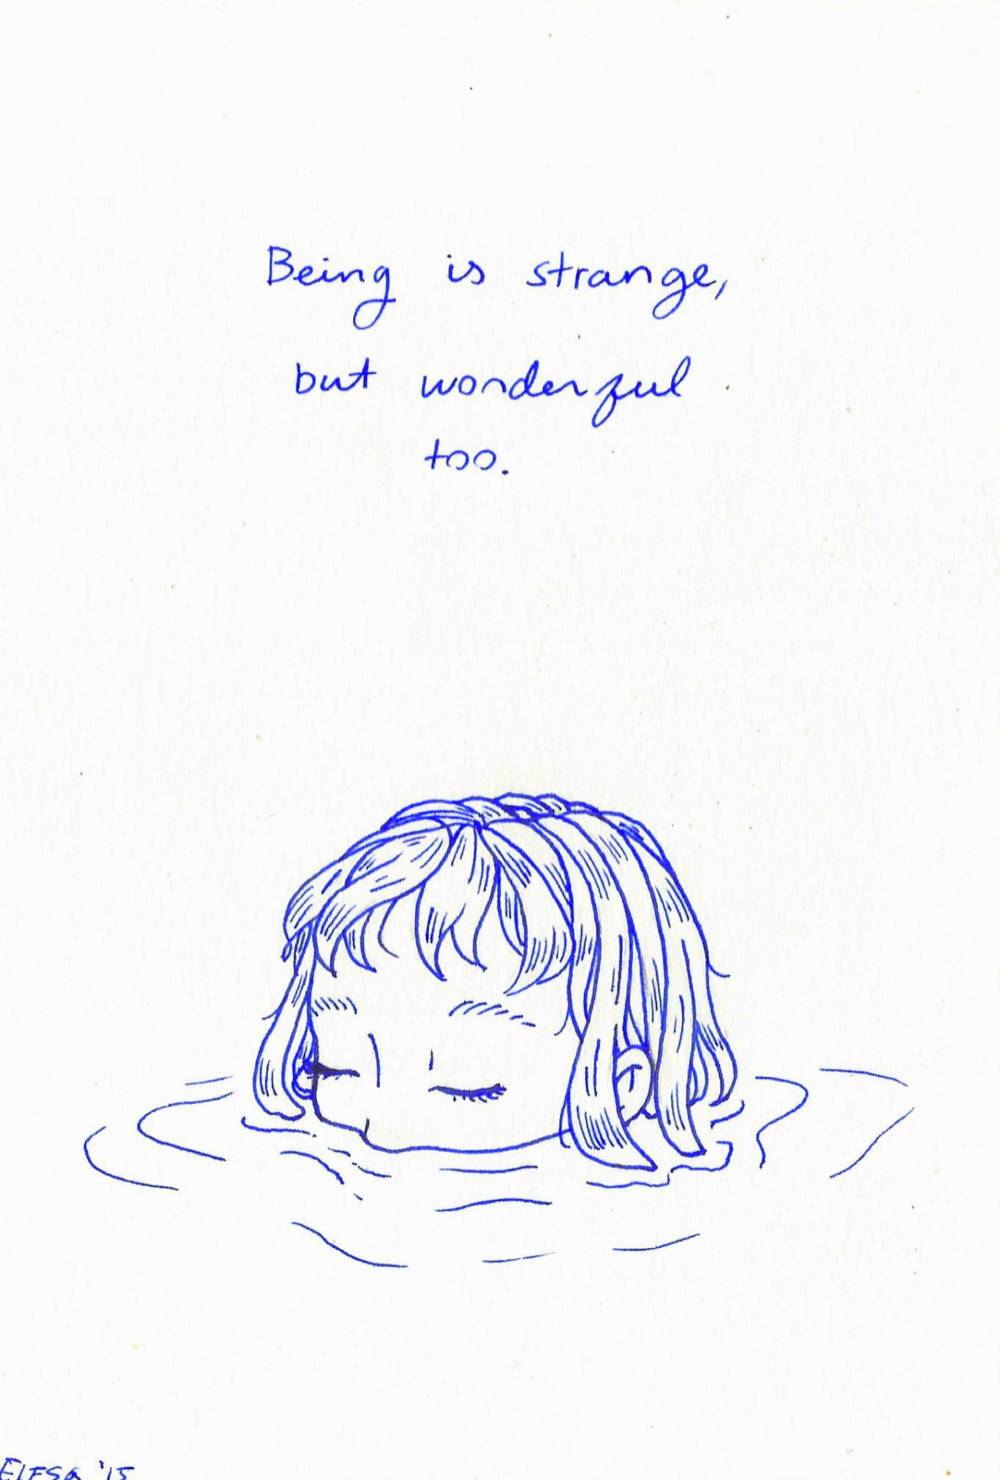 "ebriosity :     6.25.15 - journal ""Being is strange, but wonderful too""   There's more strangeness than sadness these days. I'm glad.    (Please don't remove my caption)"